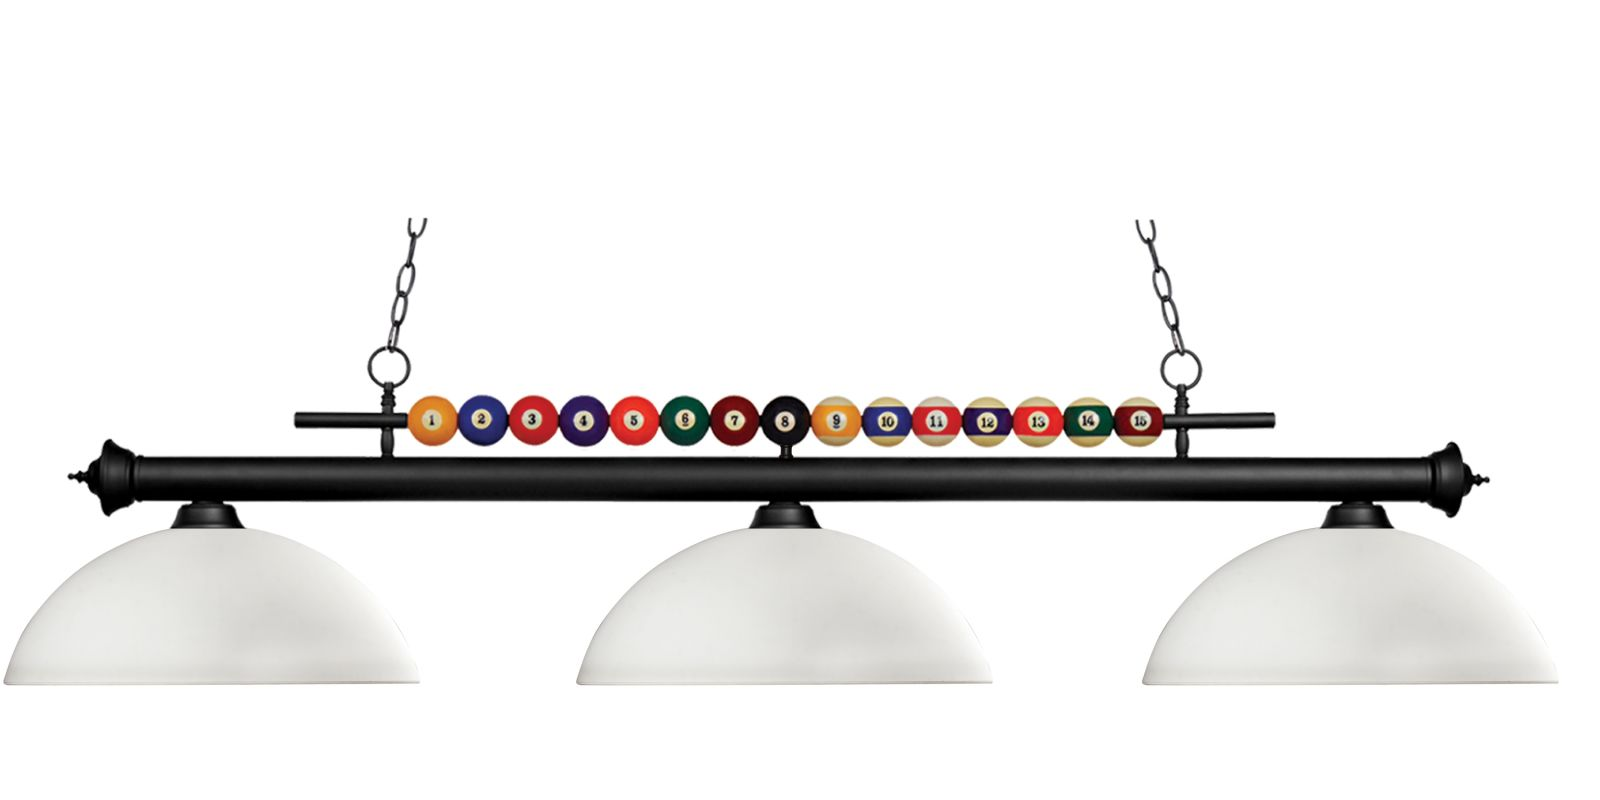 Z-Lite 170-DMO14 Shark 3 Light Billiard Chandelier with White Glass